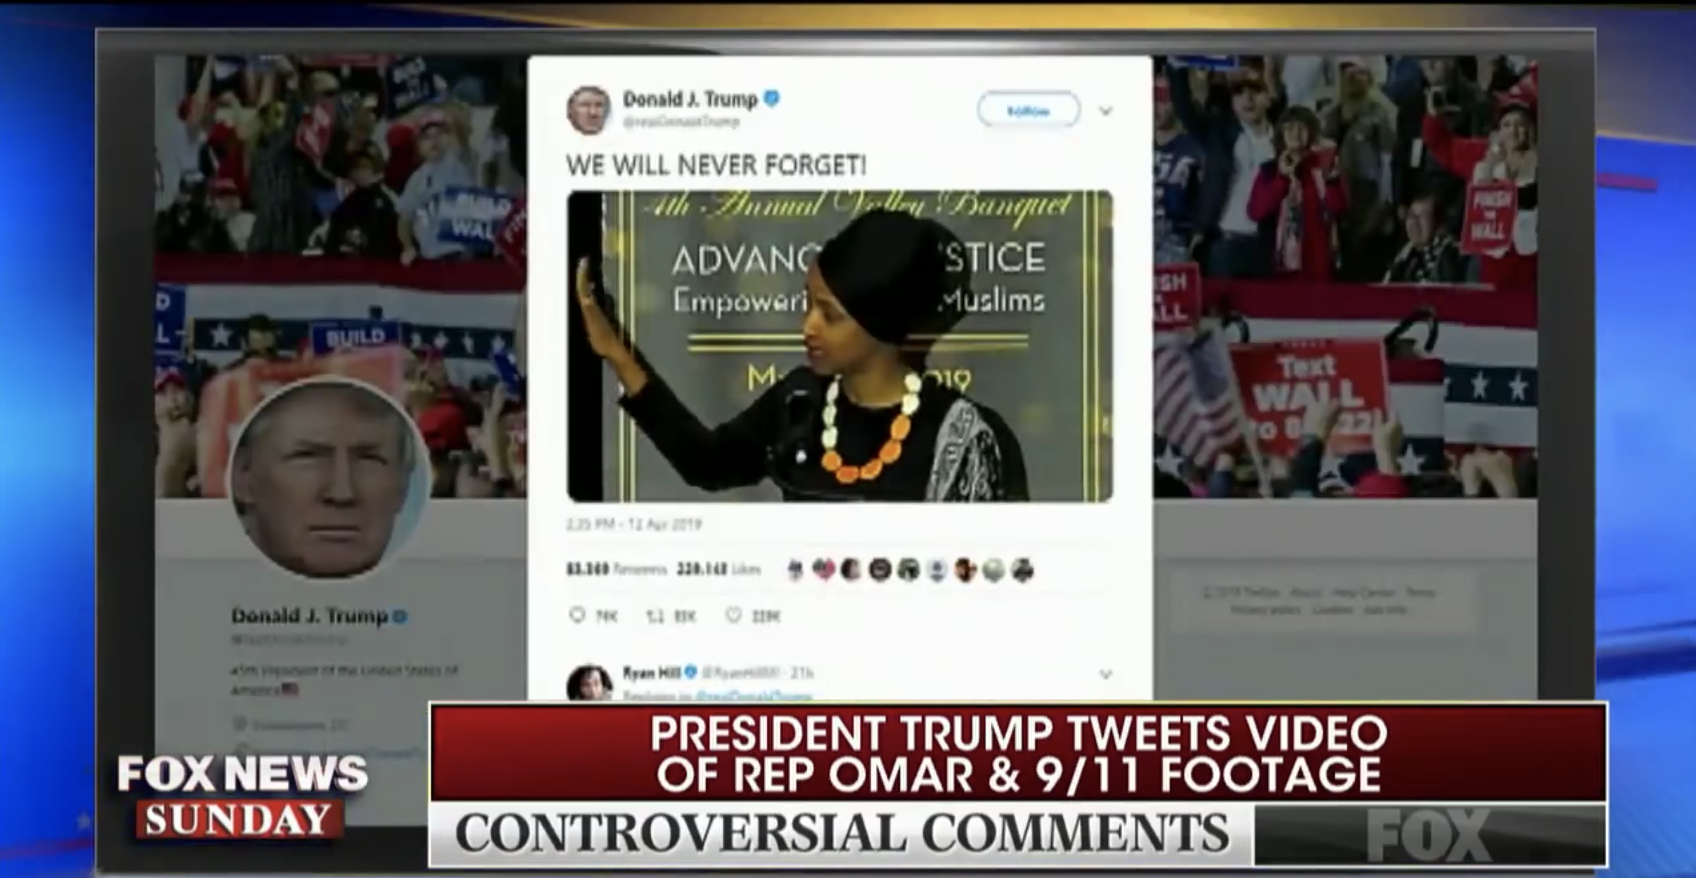 A screenshot showing part of the brief clip Fox's Chris Wallace showed of the video that President Donald Trump tweeted attacking Rep. Ilhan Omar.